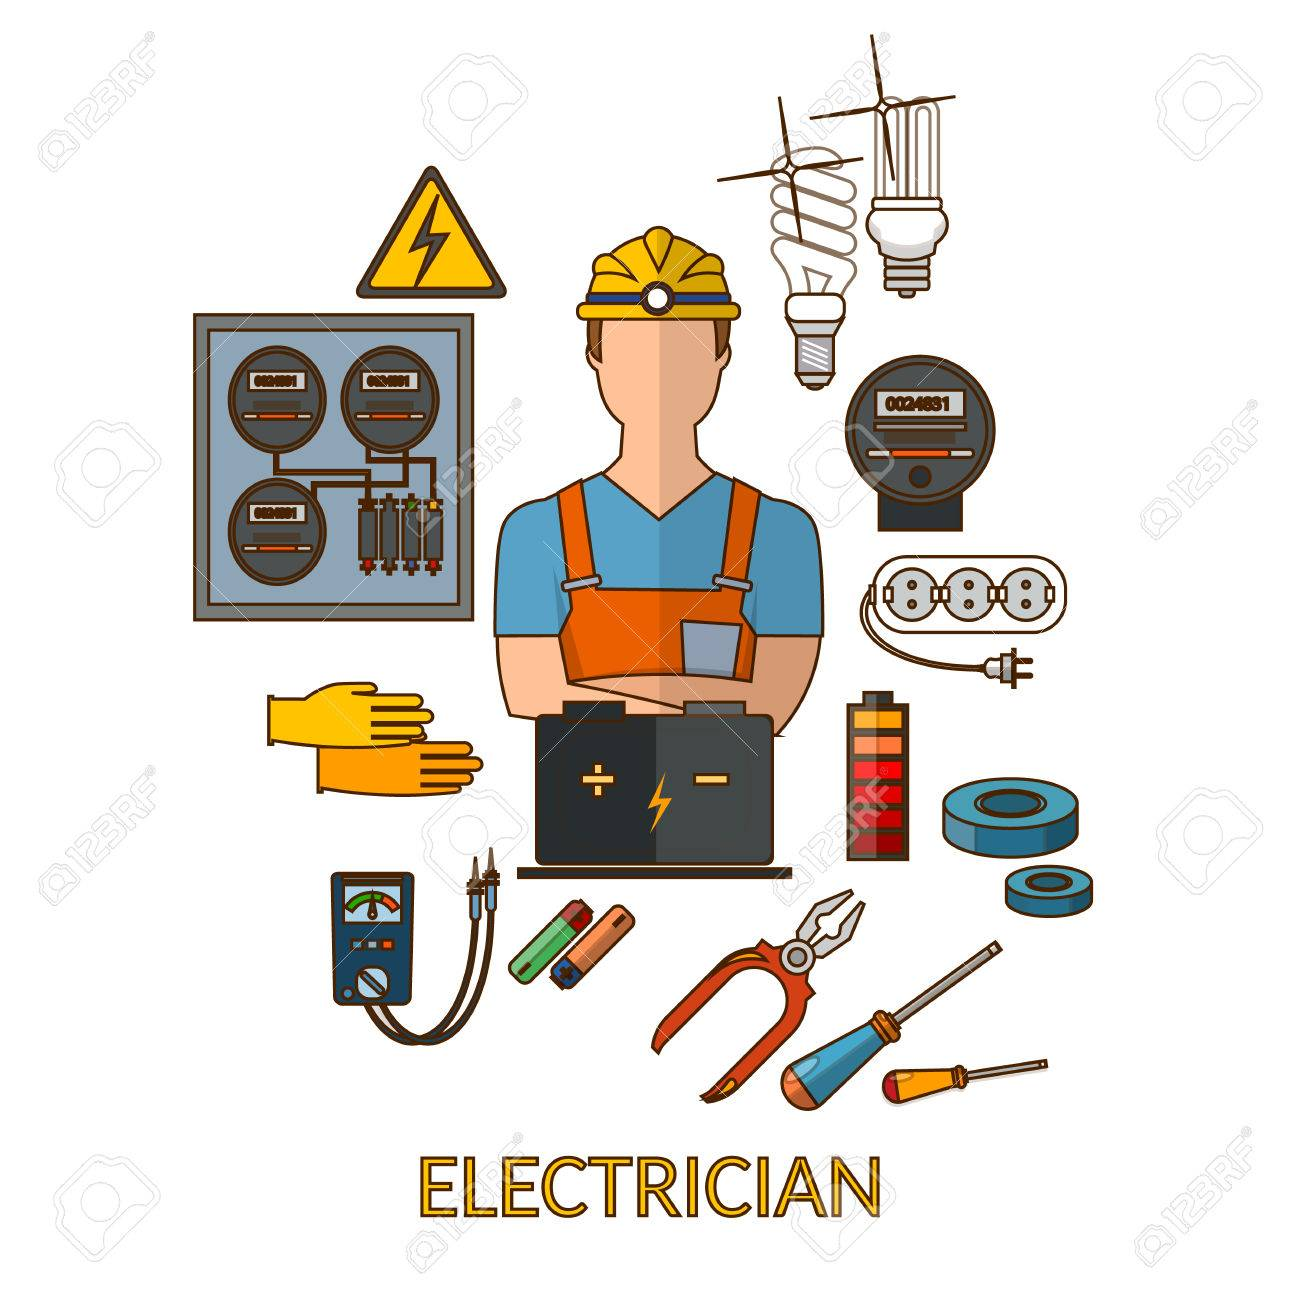 Professional Electrician With Electricity Tools Silhouette Vector Illustration Stock